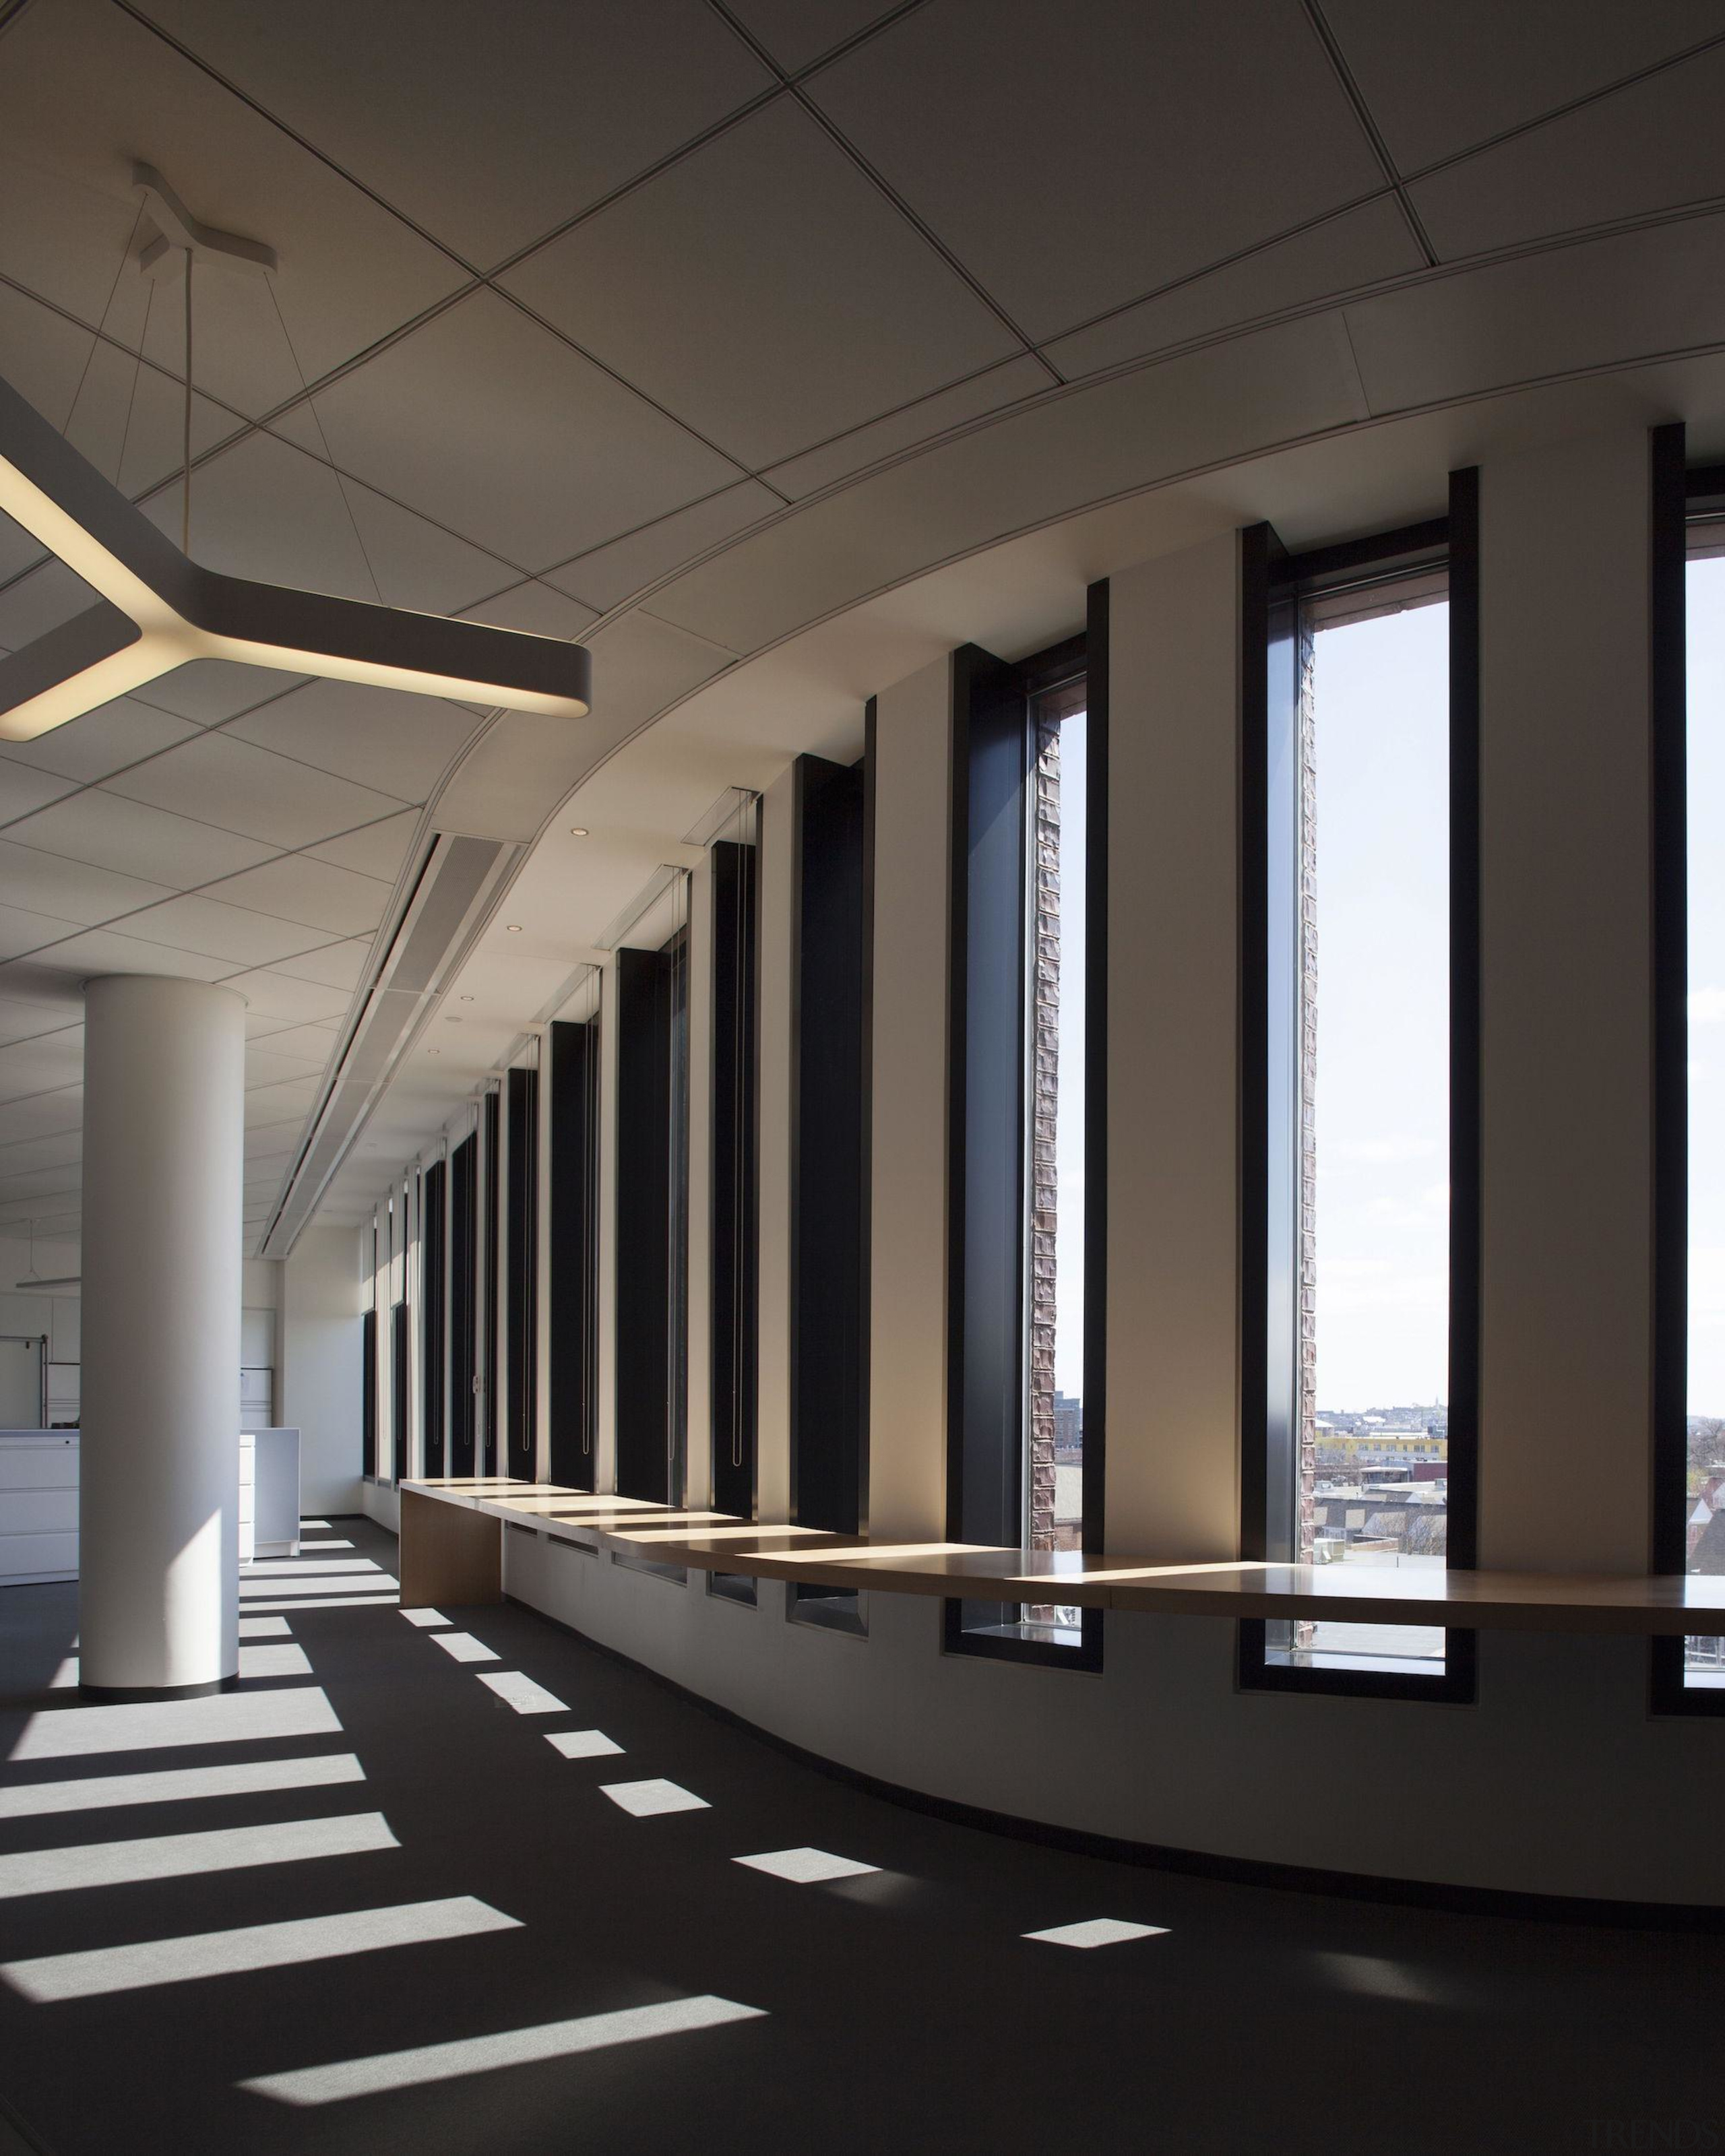 Bruce C. Bolling Municipal Building - Bruce C. architecture, ceiling, daylighting, structure, black, gray